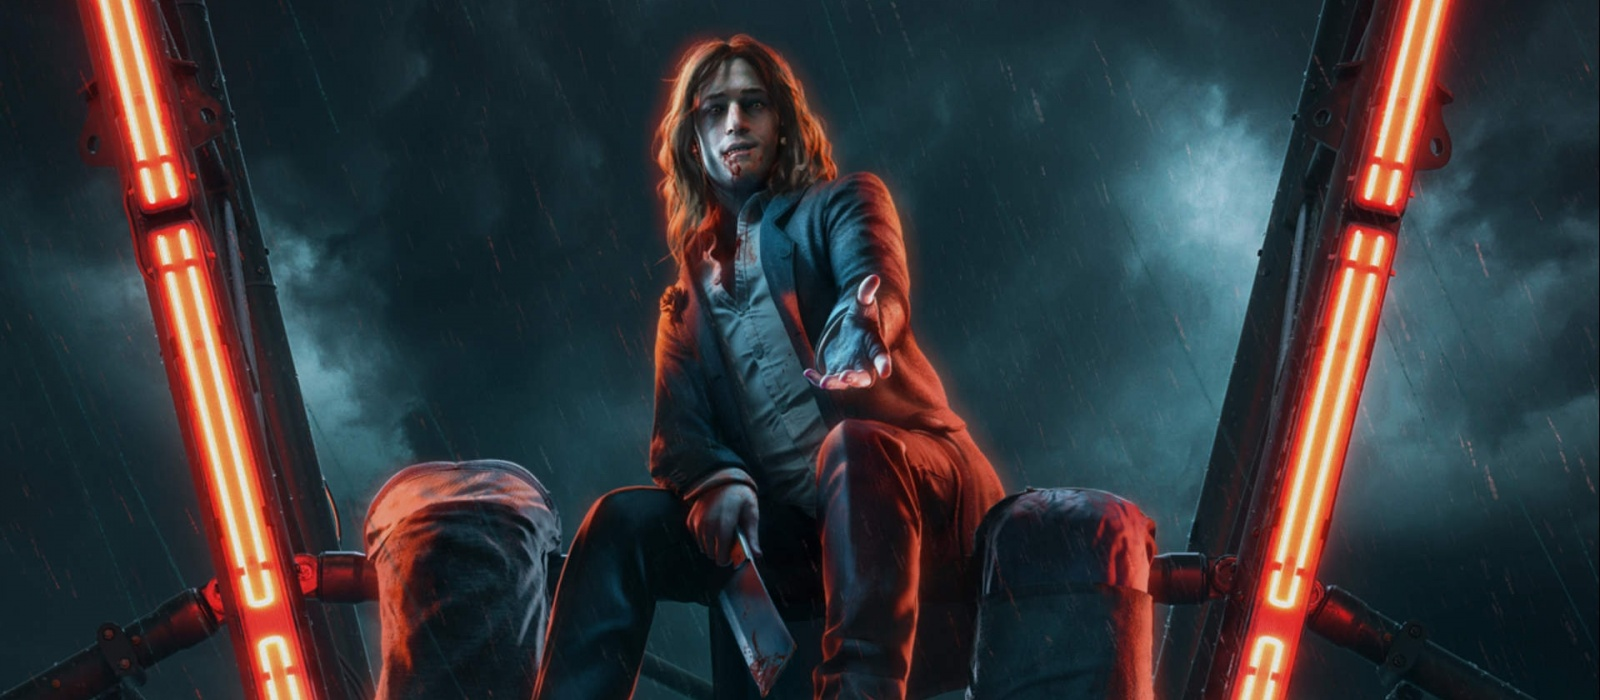 Top 20 Most Anticipated Games of 2021 on PC, Xbox One and Xbox Series X / S